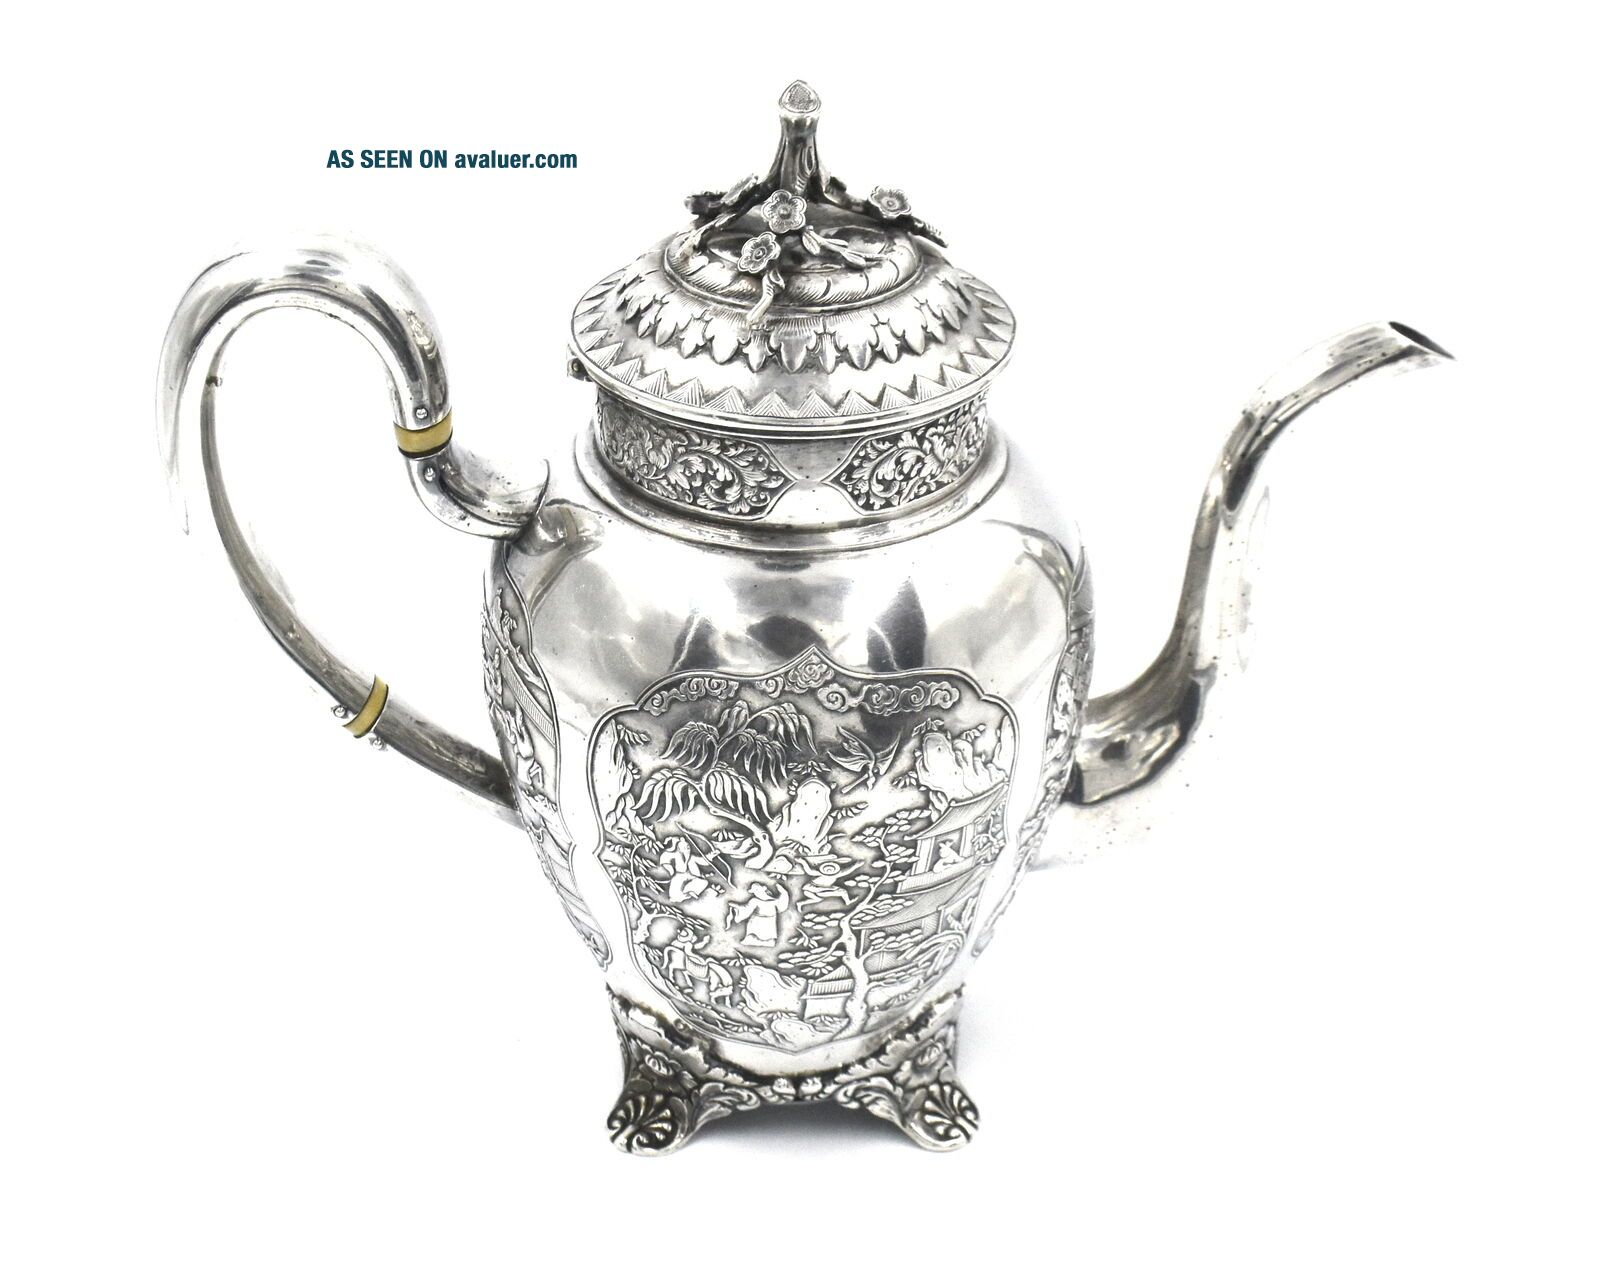 CHINESE EXPORT SILVER TEAPOT JAPANESE AESTHETIC KHECHEONG CANTON c1850